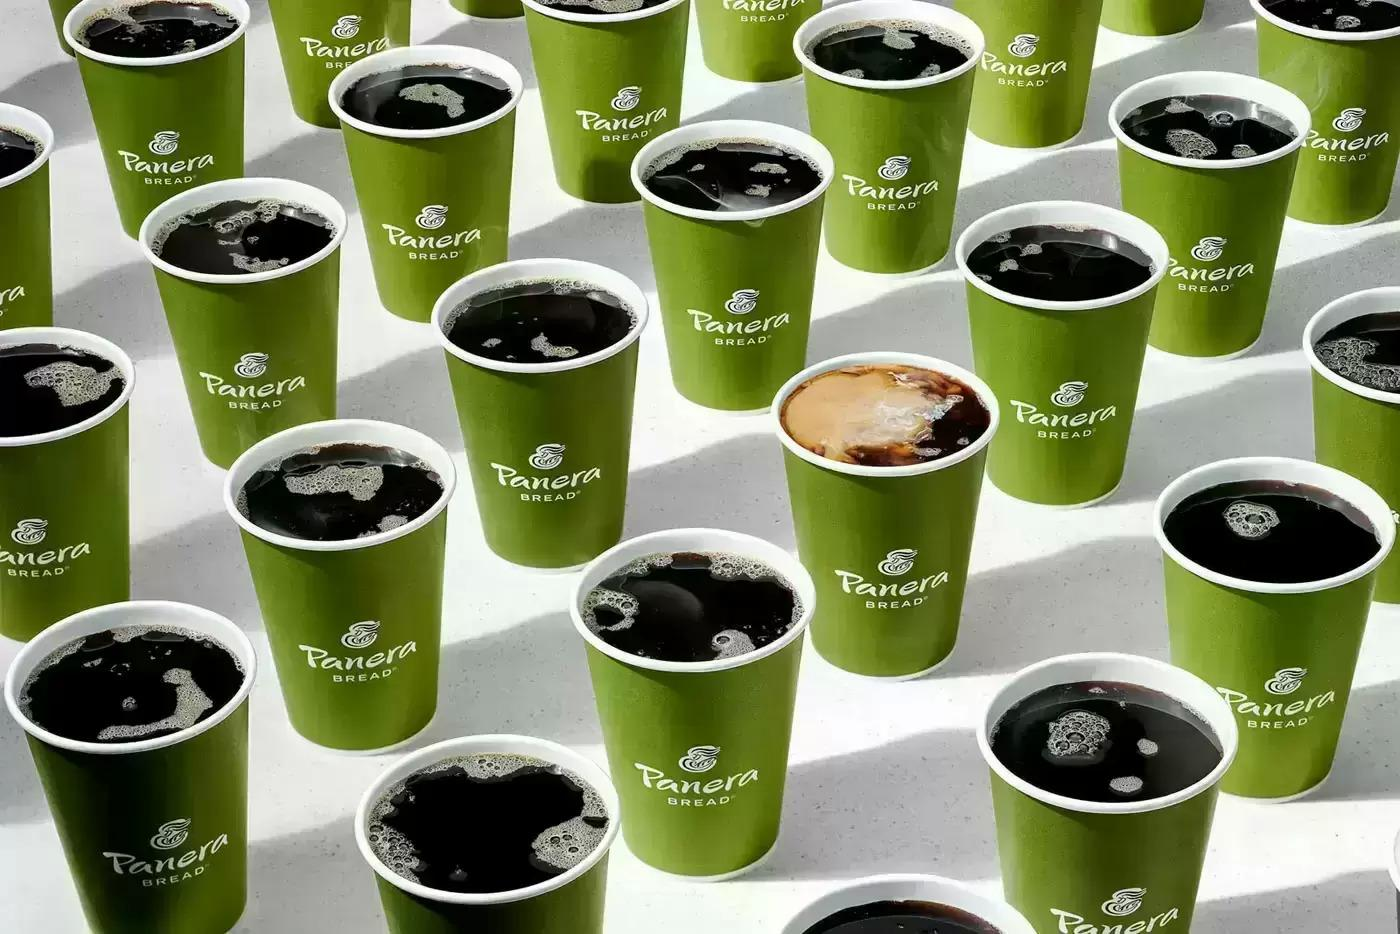 Panera Bread Unlimited Coffee for Free Until September 7th